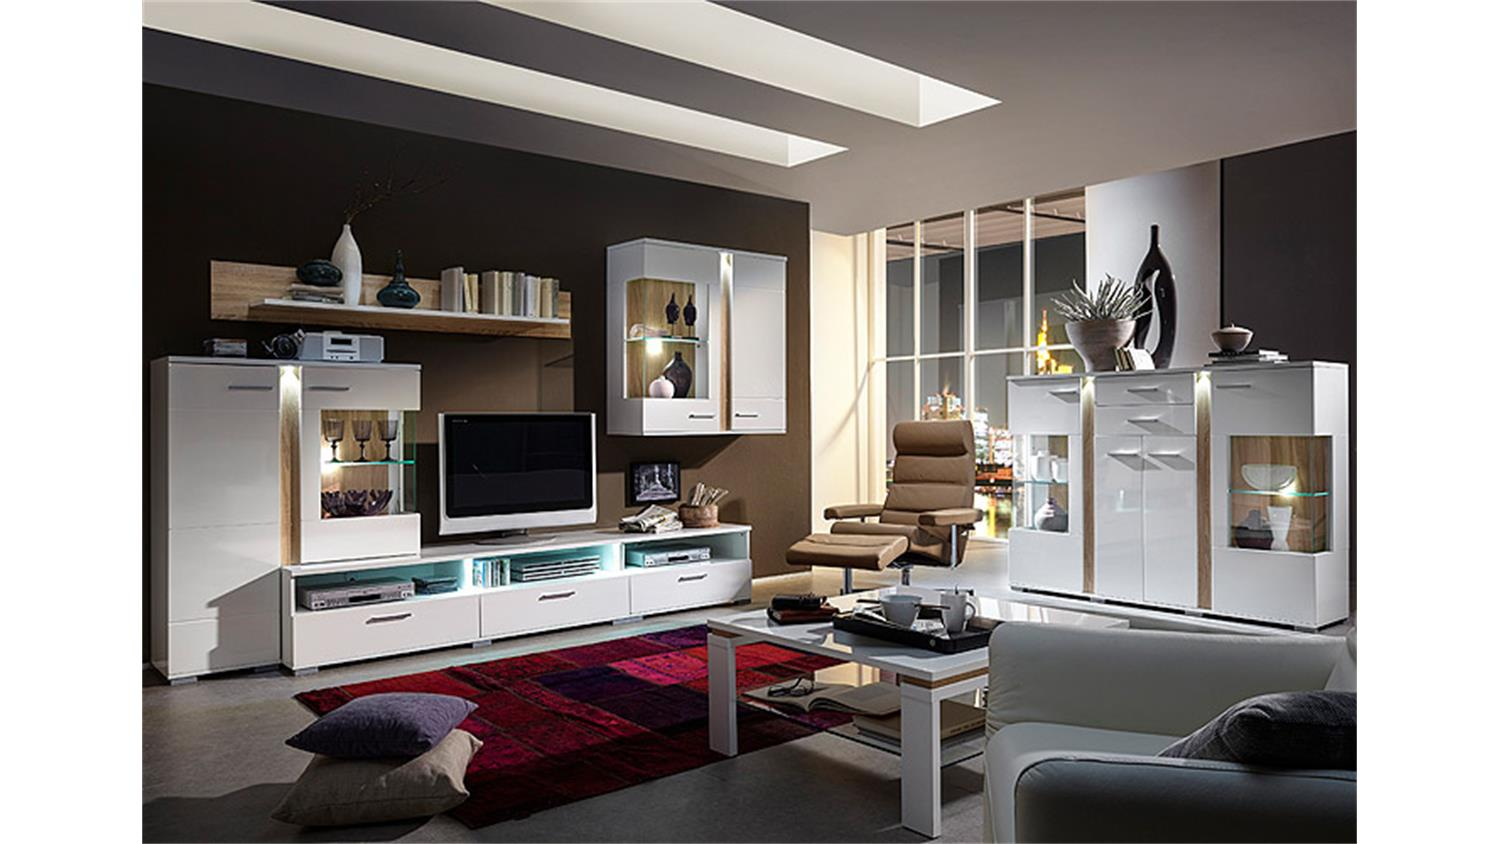 highboard spot wei hochglanz sonoma eiche s gerau hell led. Black Bedroom Furniture Sets. Home Design Ideas